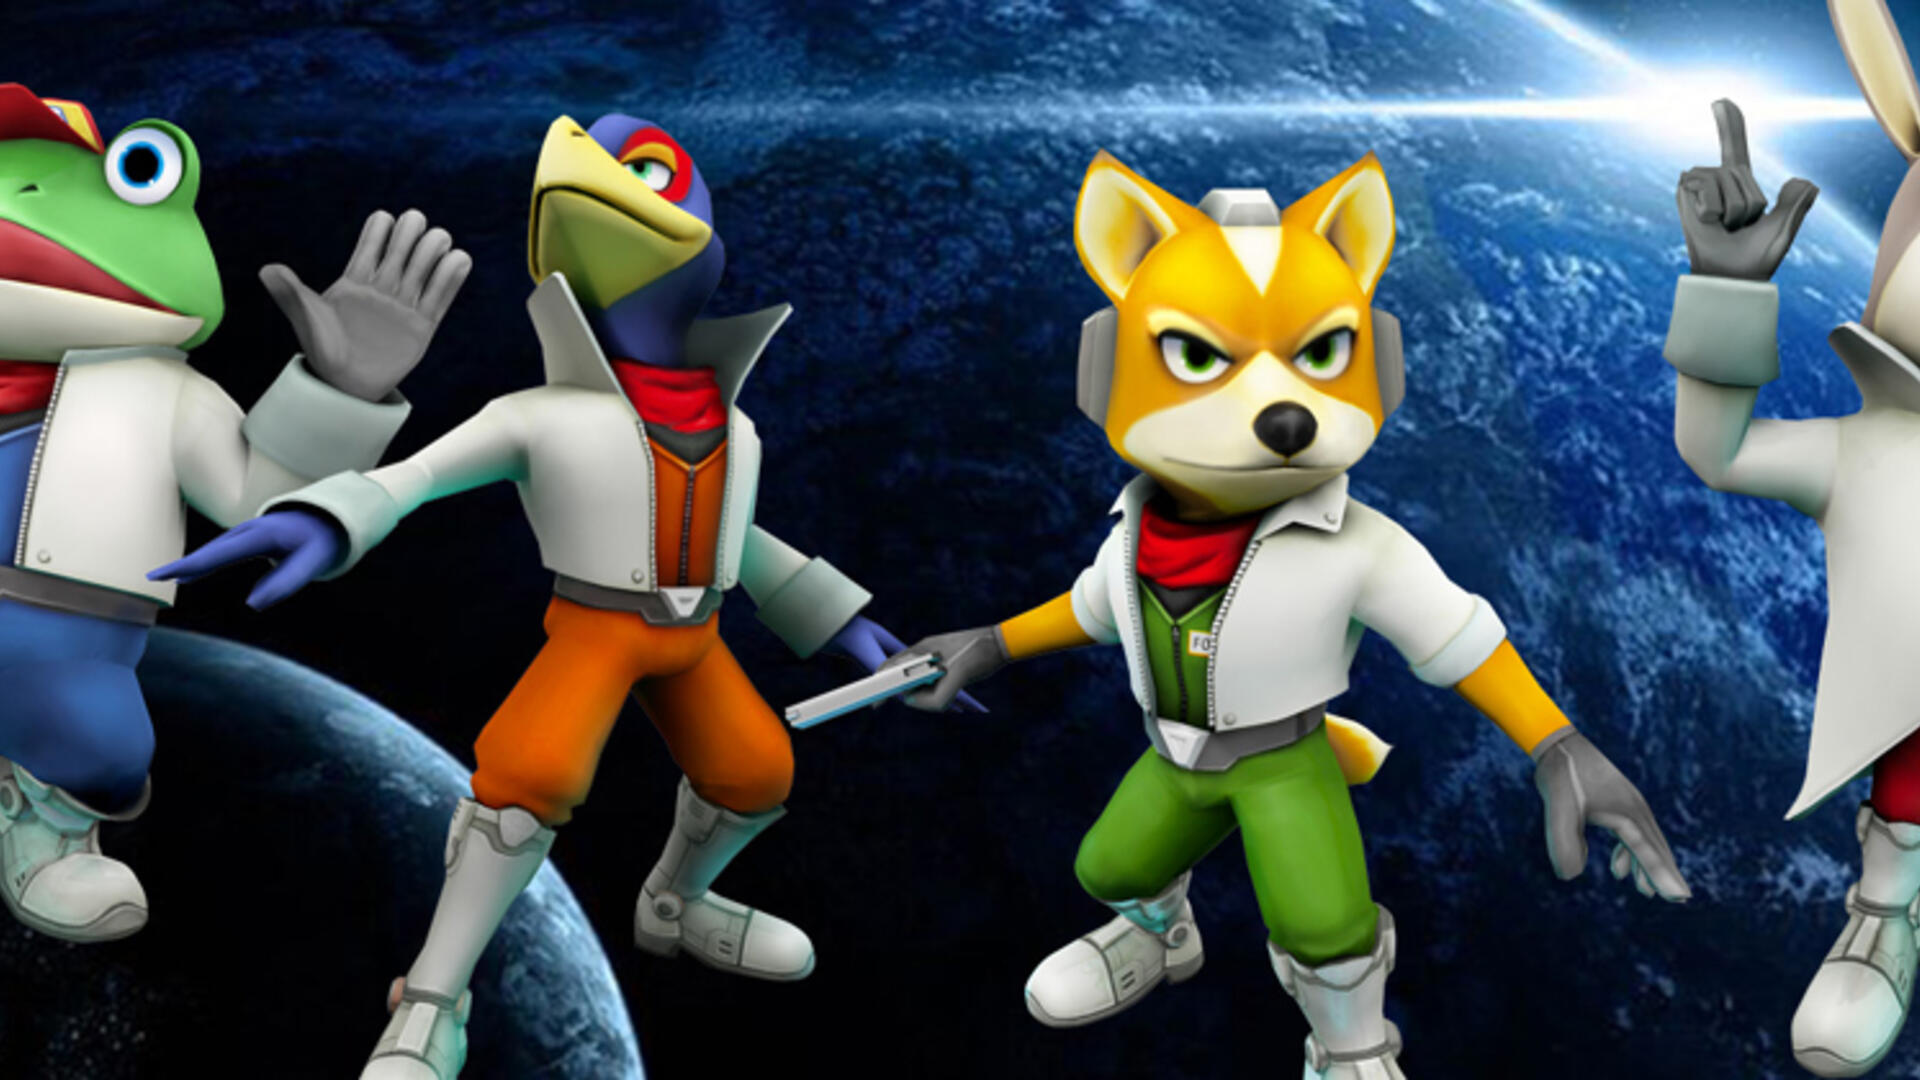 How Do You Improve Upon Star Fox 64? After 18 Years, Nintendo Still Seems to Be at a Loss